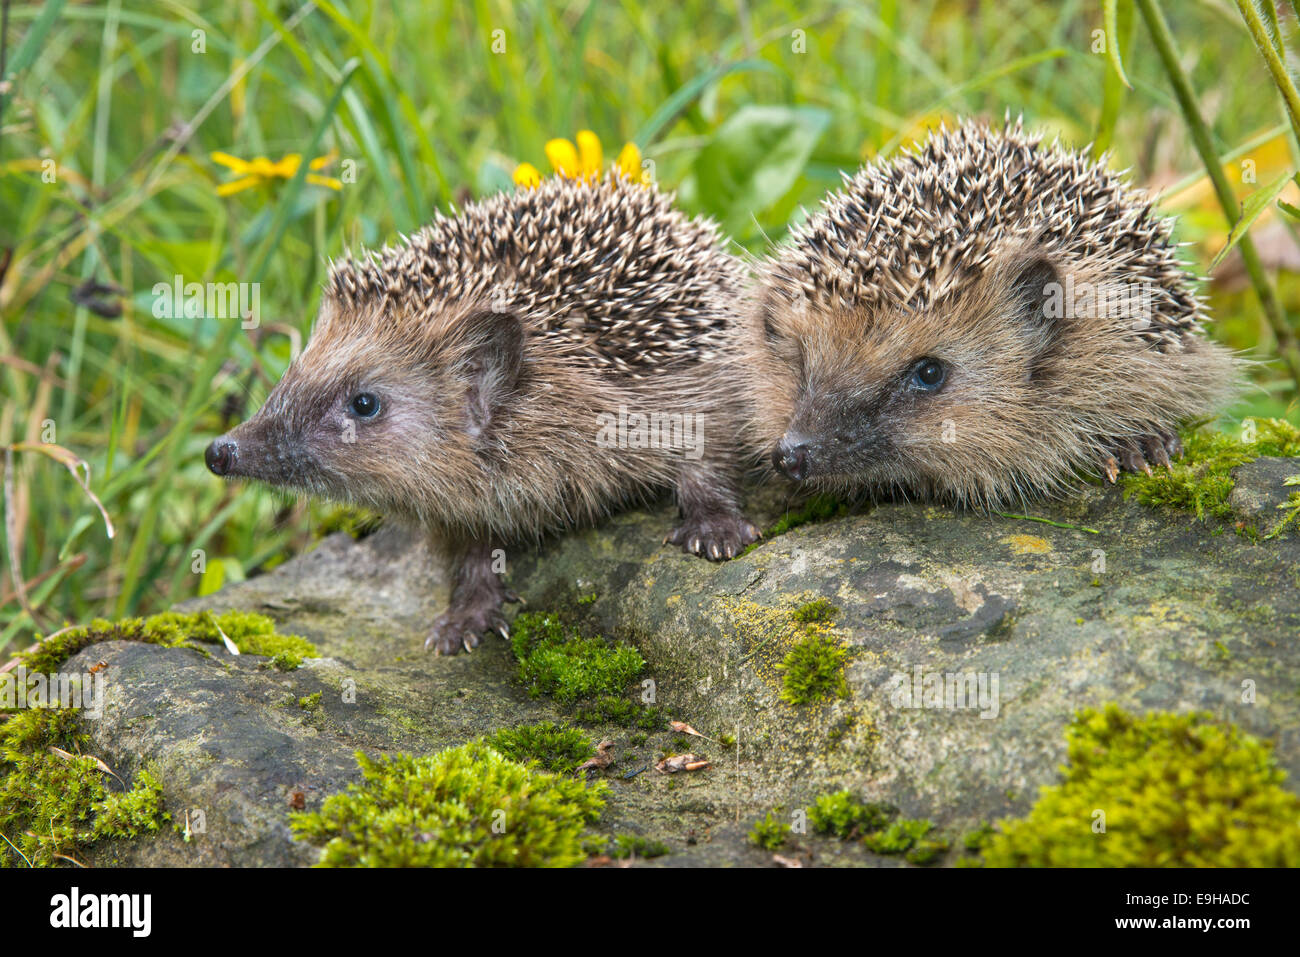 European hedgehog (Erinaceus europaeus), Tyrol, Austria Stock Photo